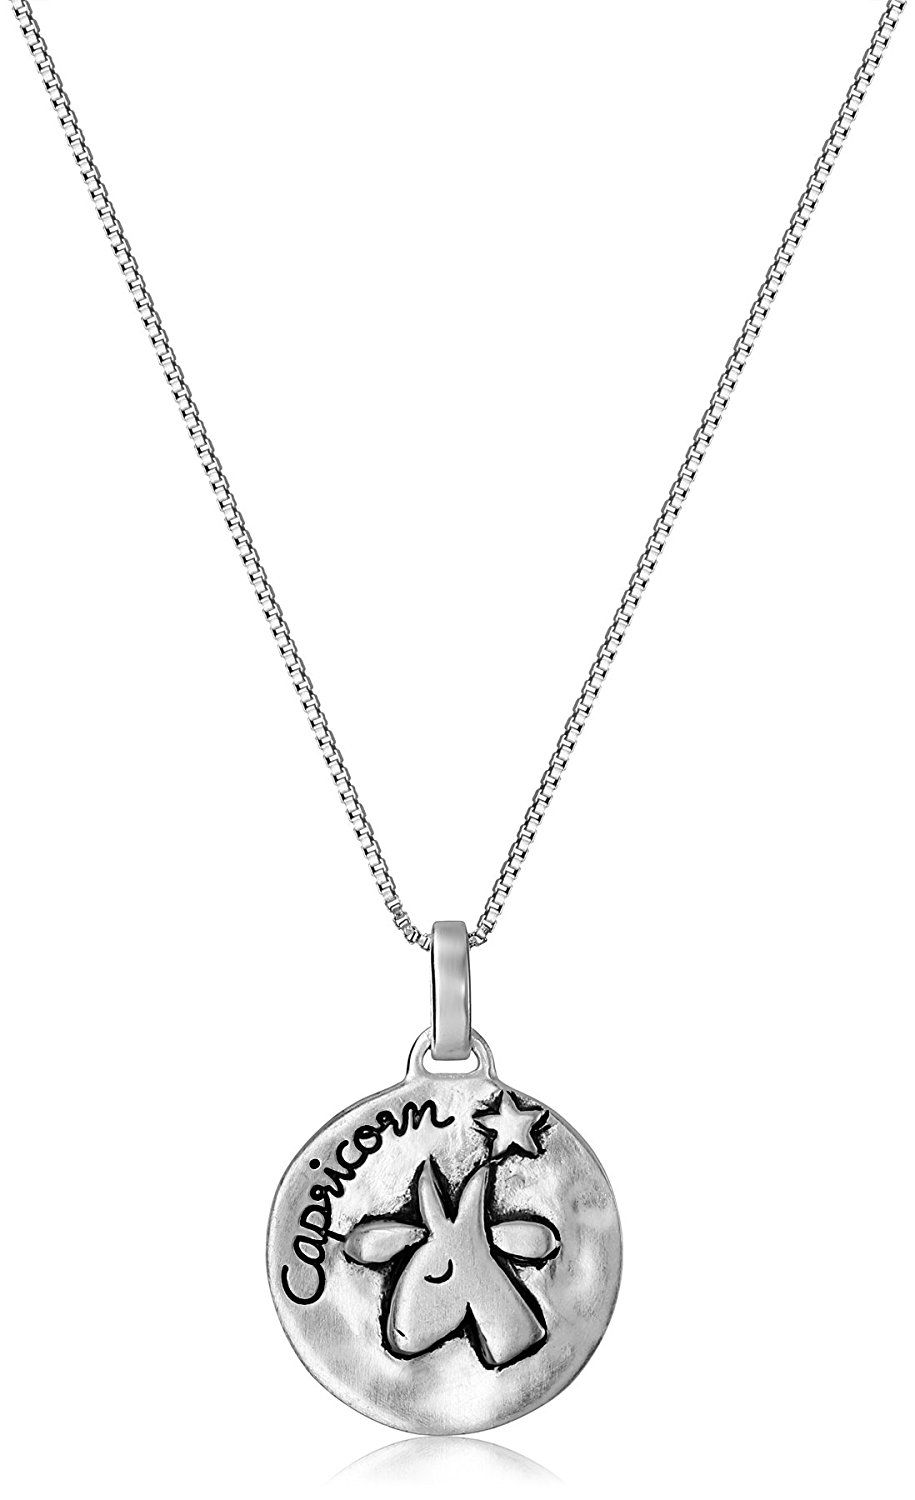 Sterling Silver Reversible Zodiac Pendant Necklace u Find out